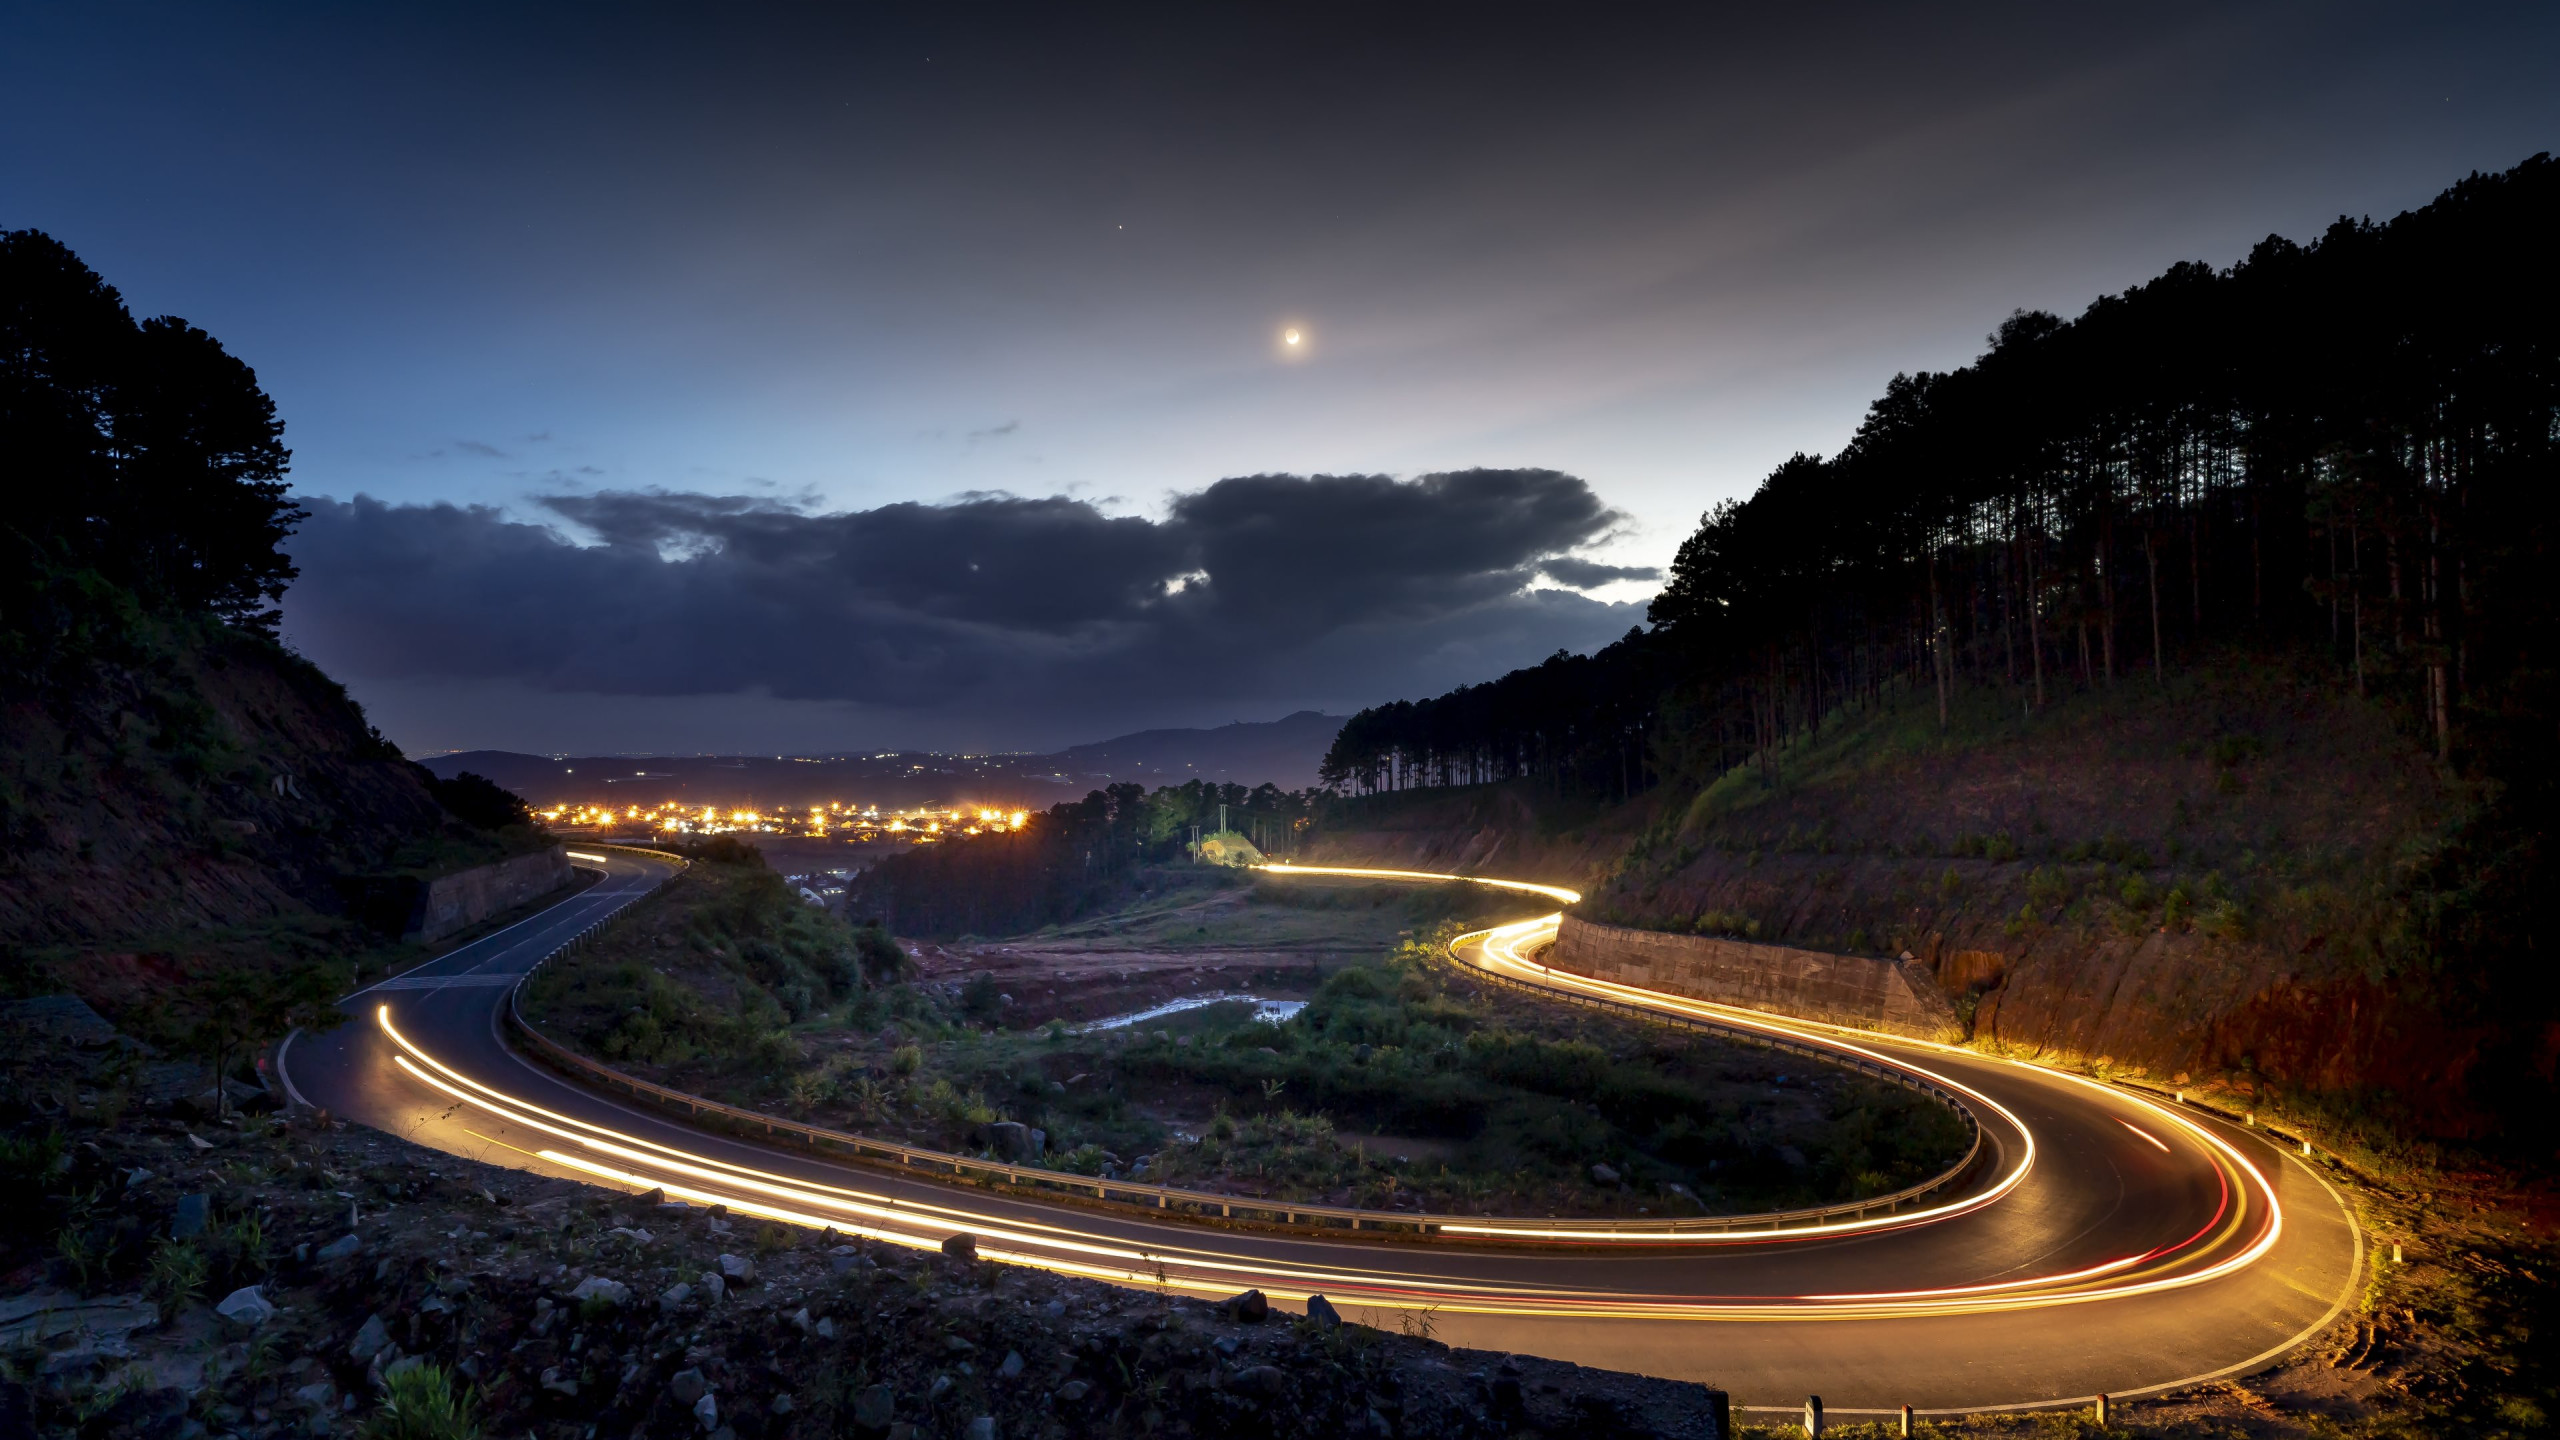 Lights on the road of Dalat, Vietnam wallpaper 2560x1440